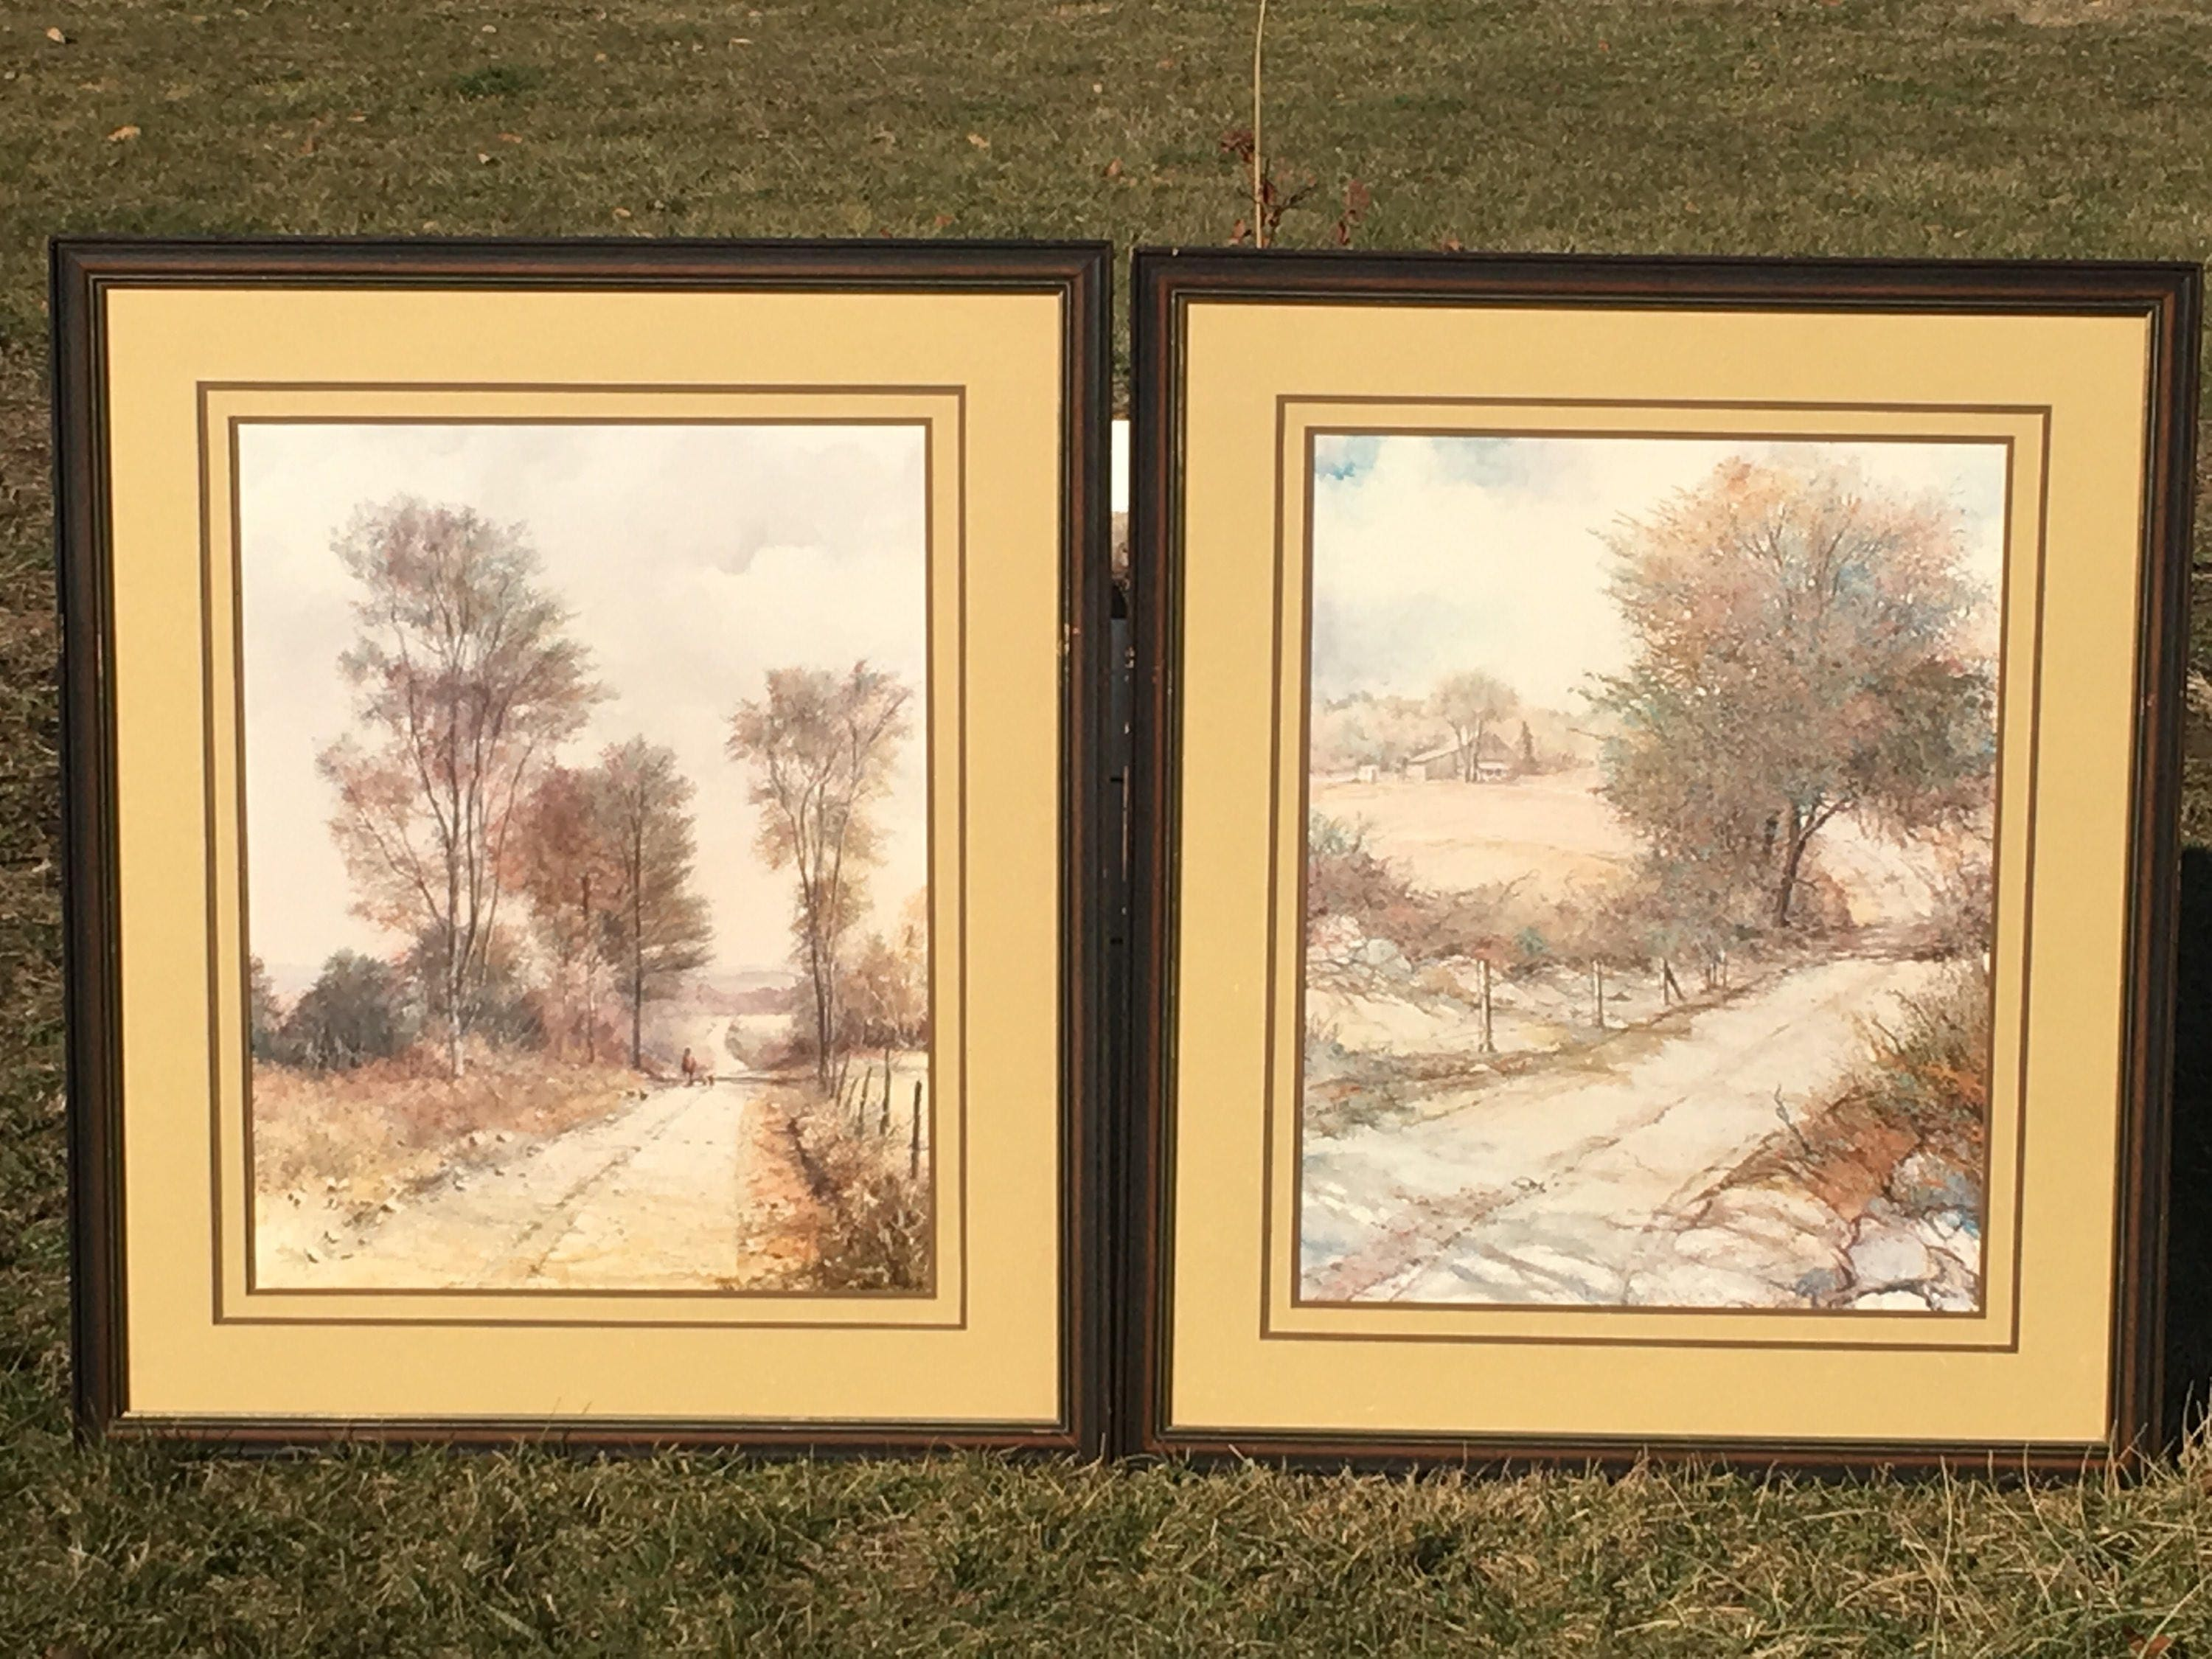 Vintage Framed Pictures, Signed Mallon Prints, Decorative Way Home ...